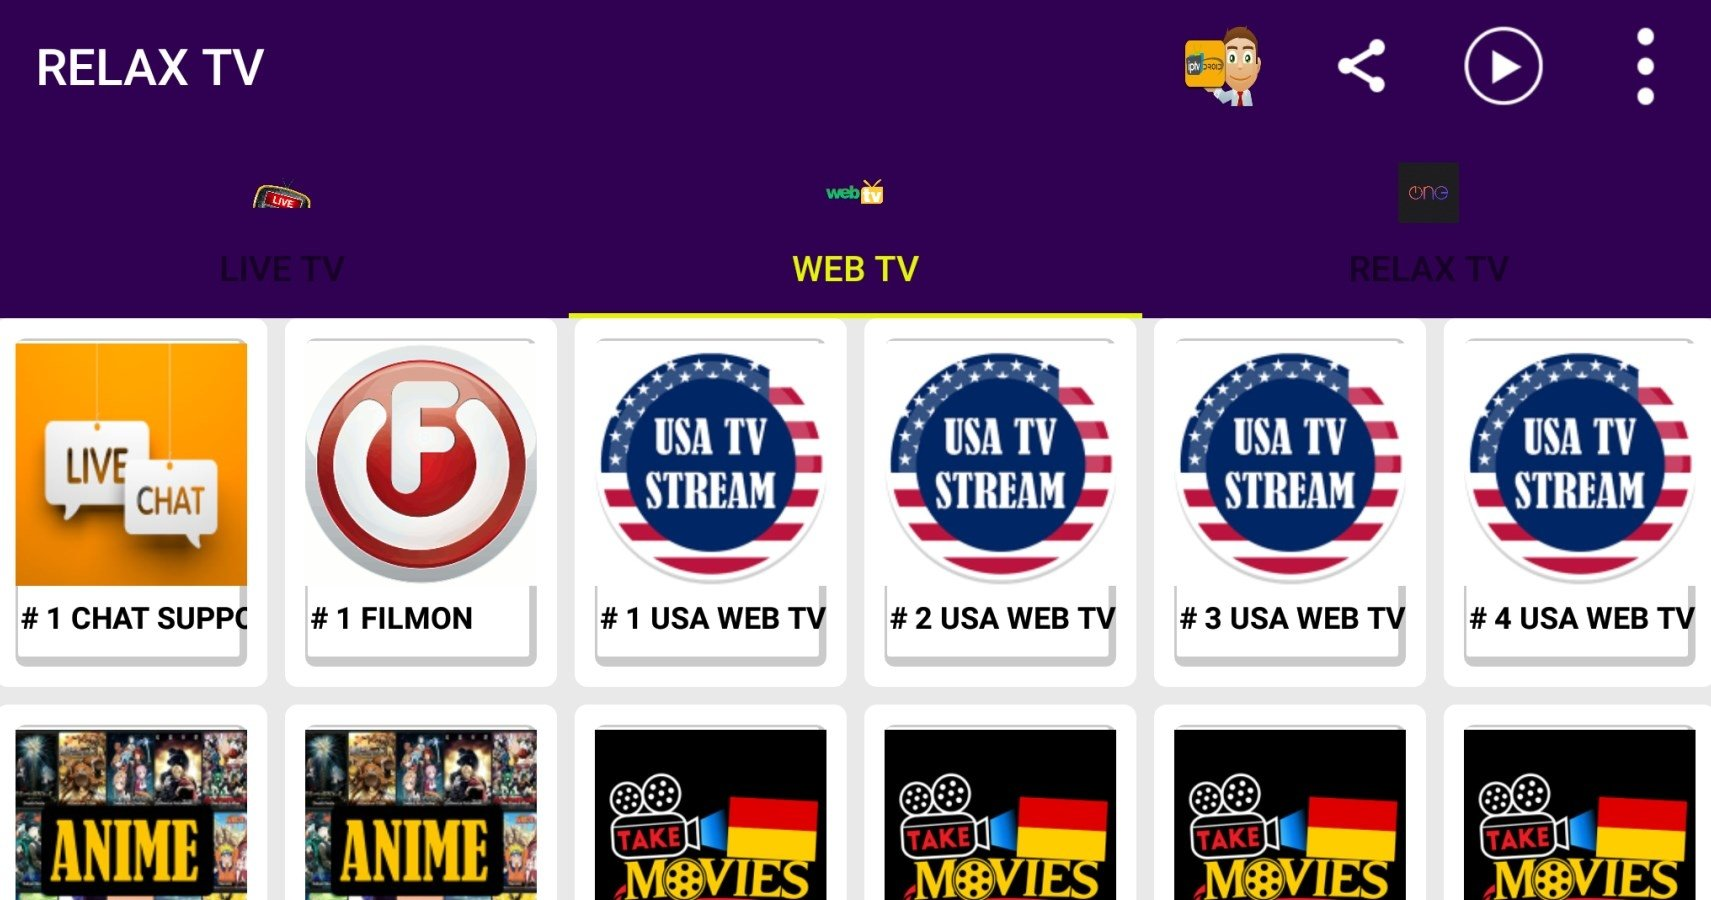 Ongekend Relax TV 1.0 - Download for Android APK Free MN-46